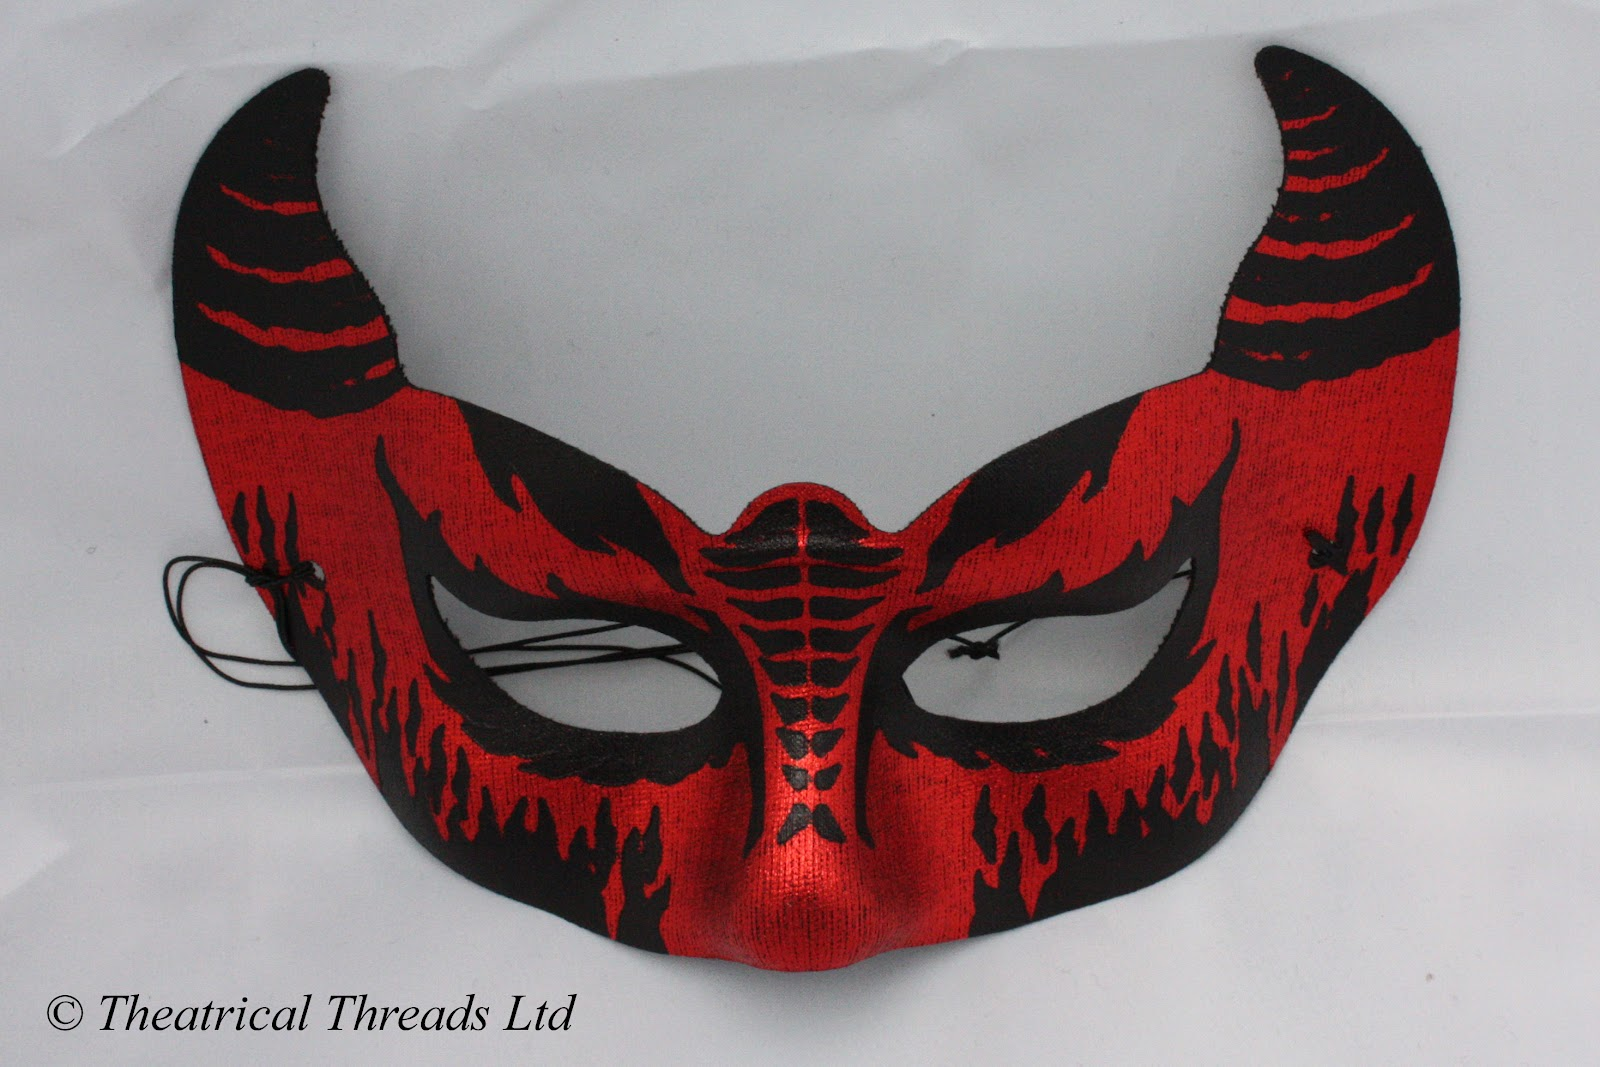 Theatrical Threads: Halloween Devil Masks Red and Black